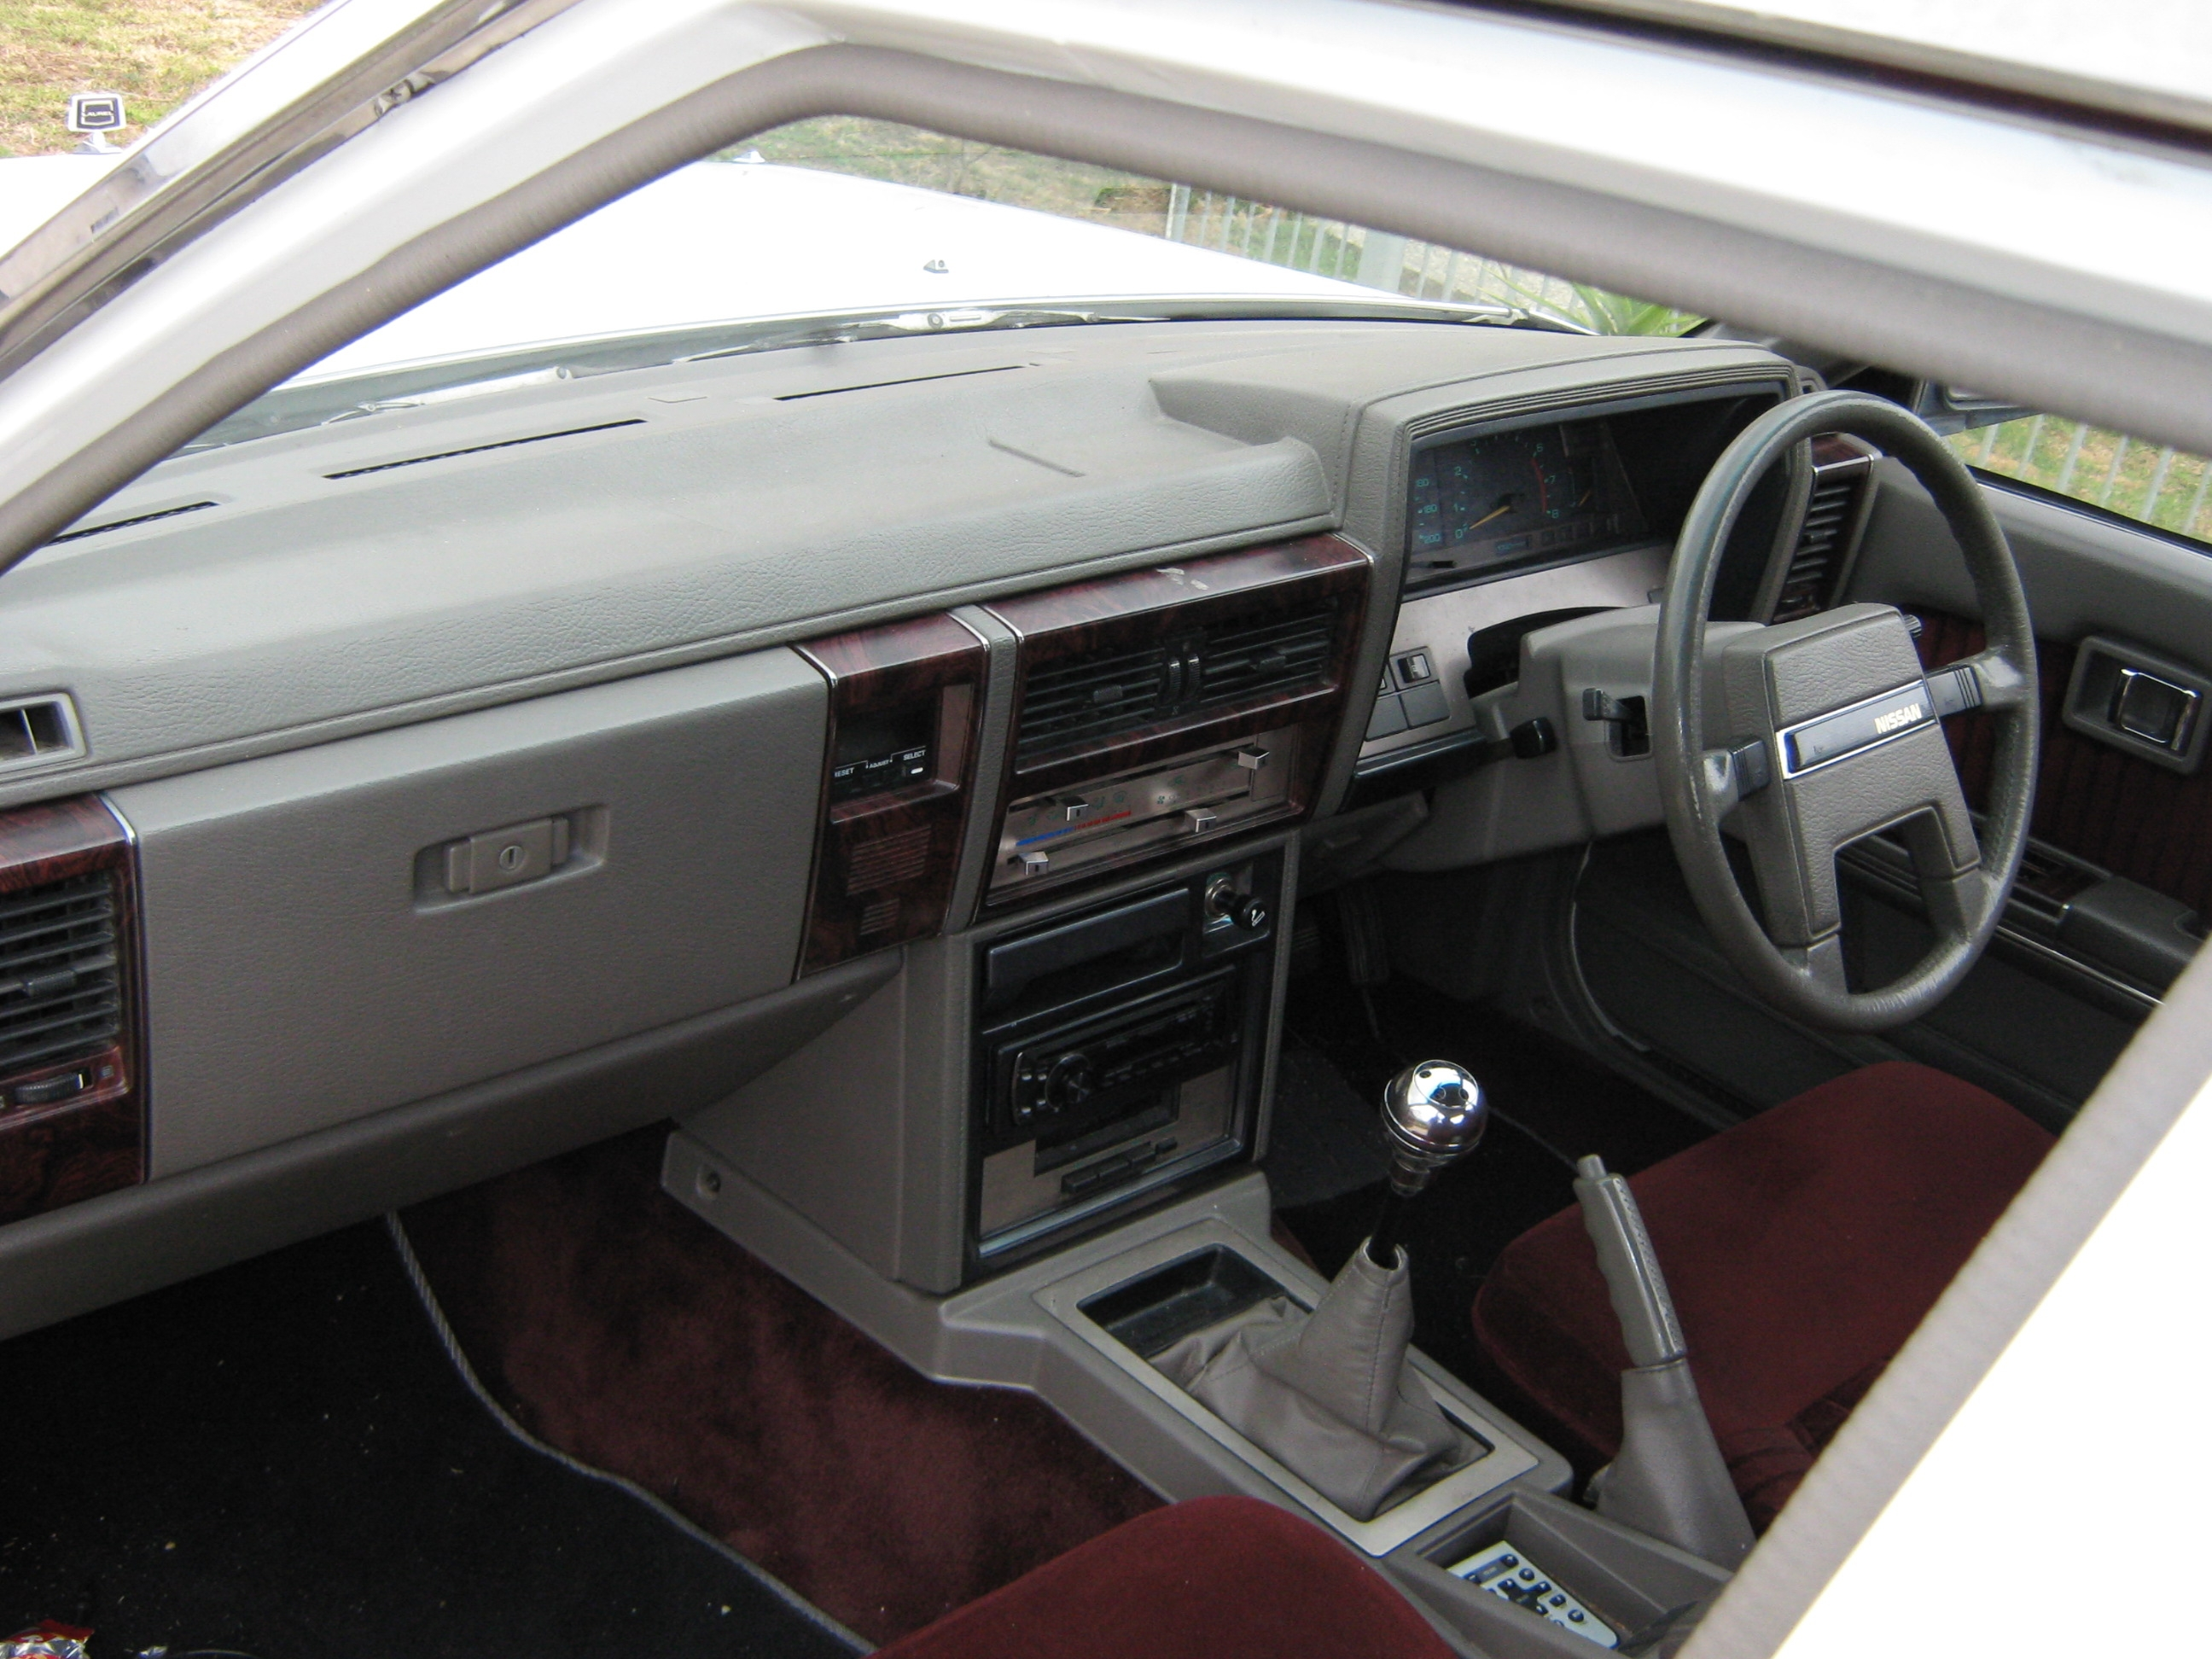 Delta_richo 1985 Nissan Laurel 14143546